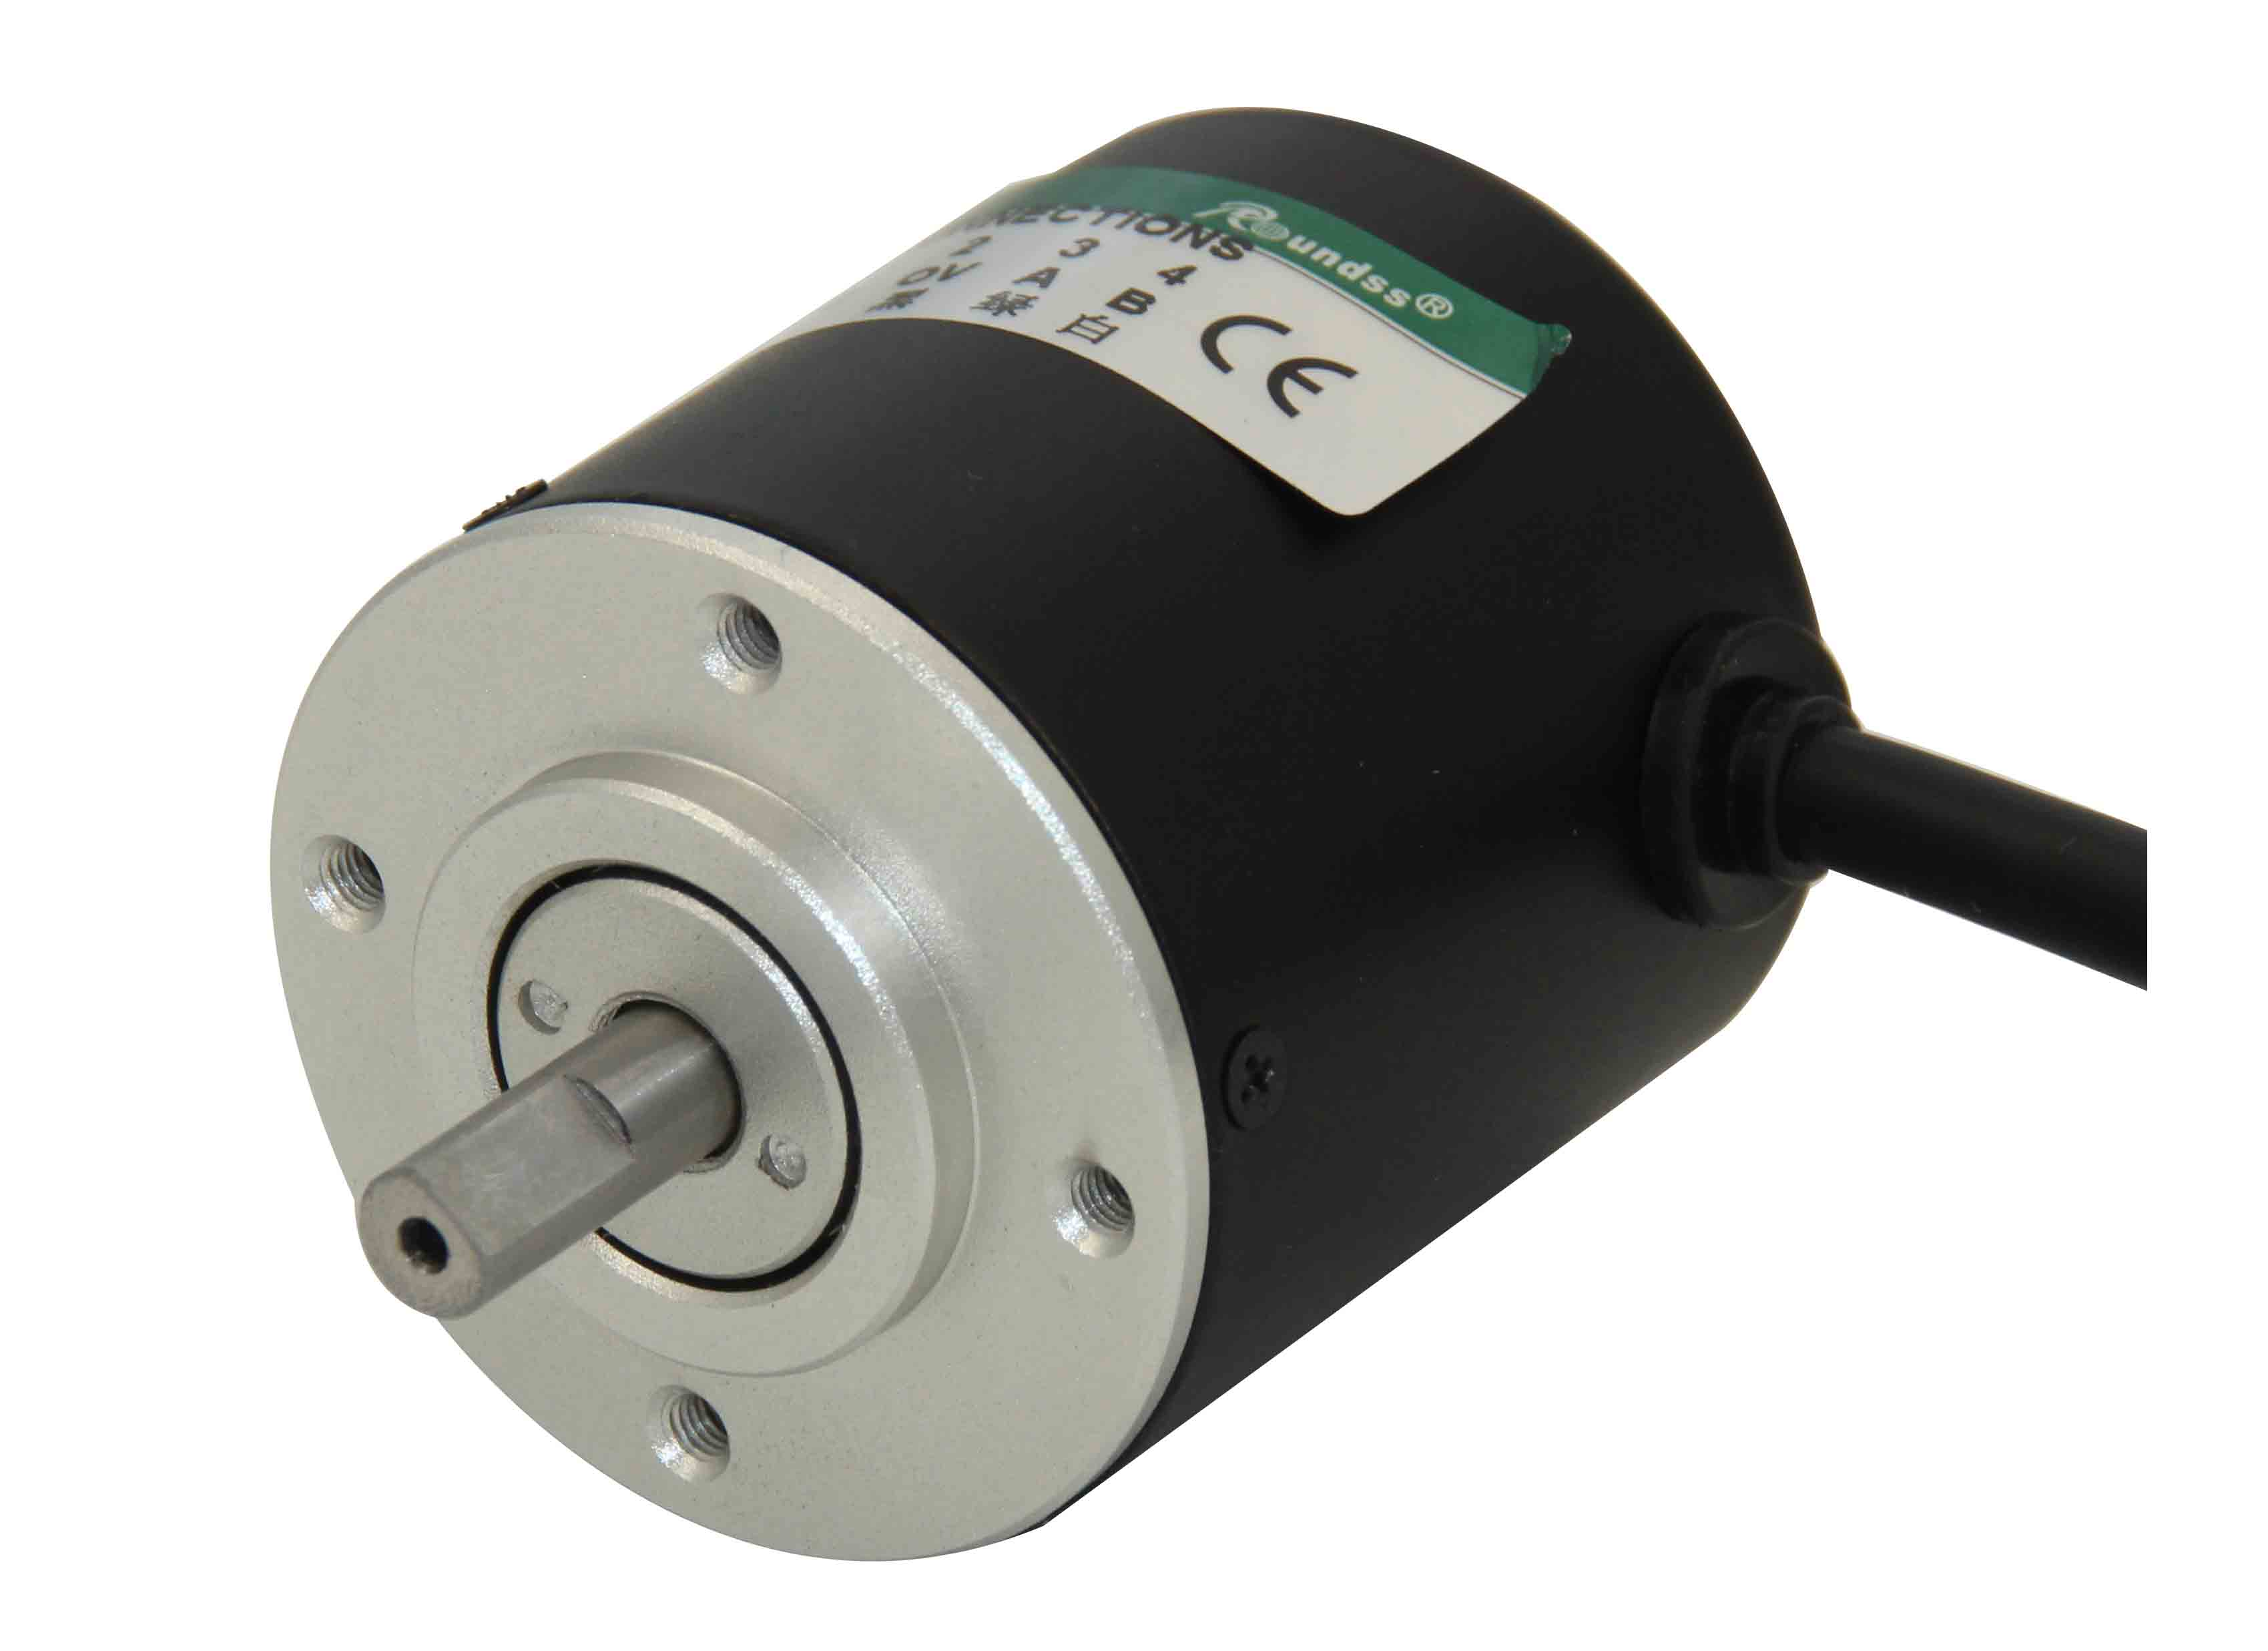 Absolute Encoder_Single-turn Absolute Solid Shaft Encoder